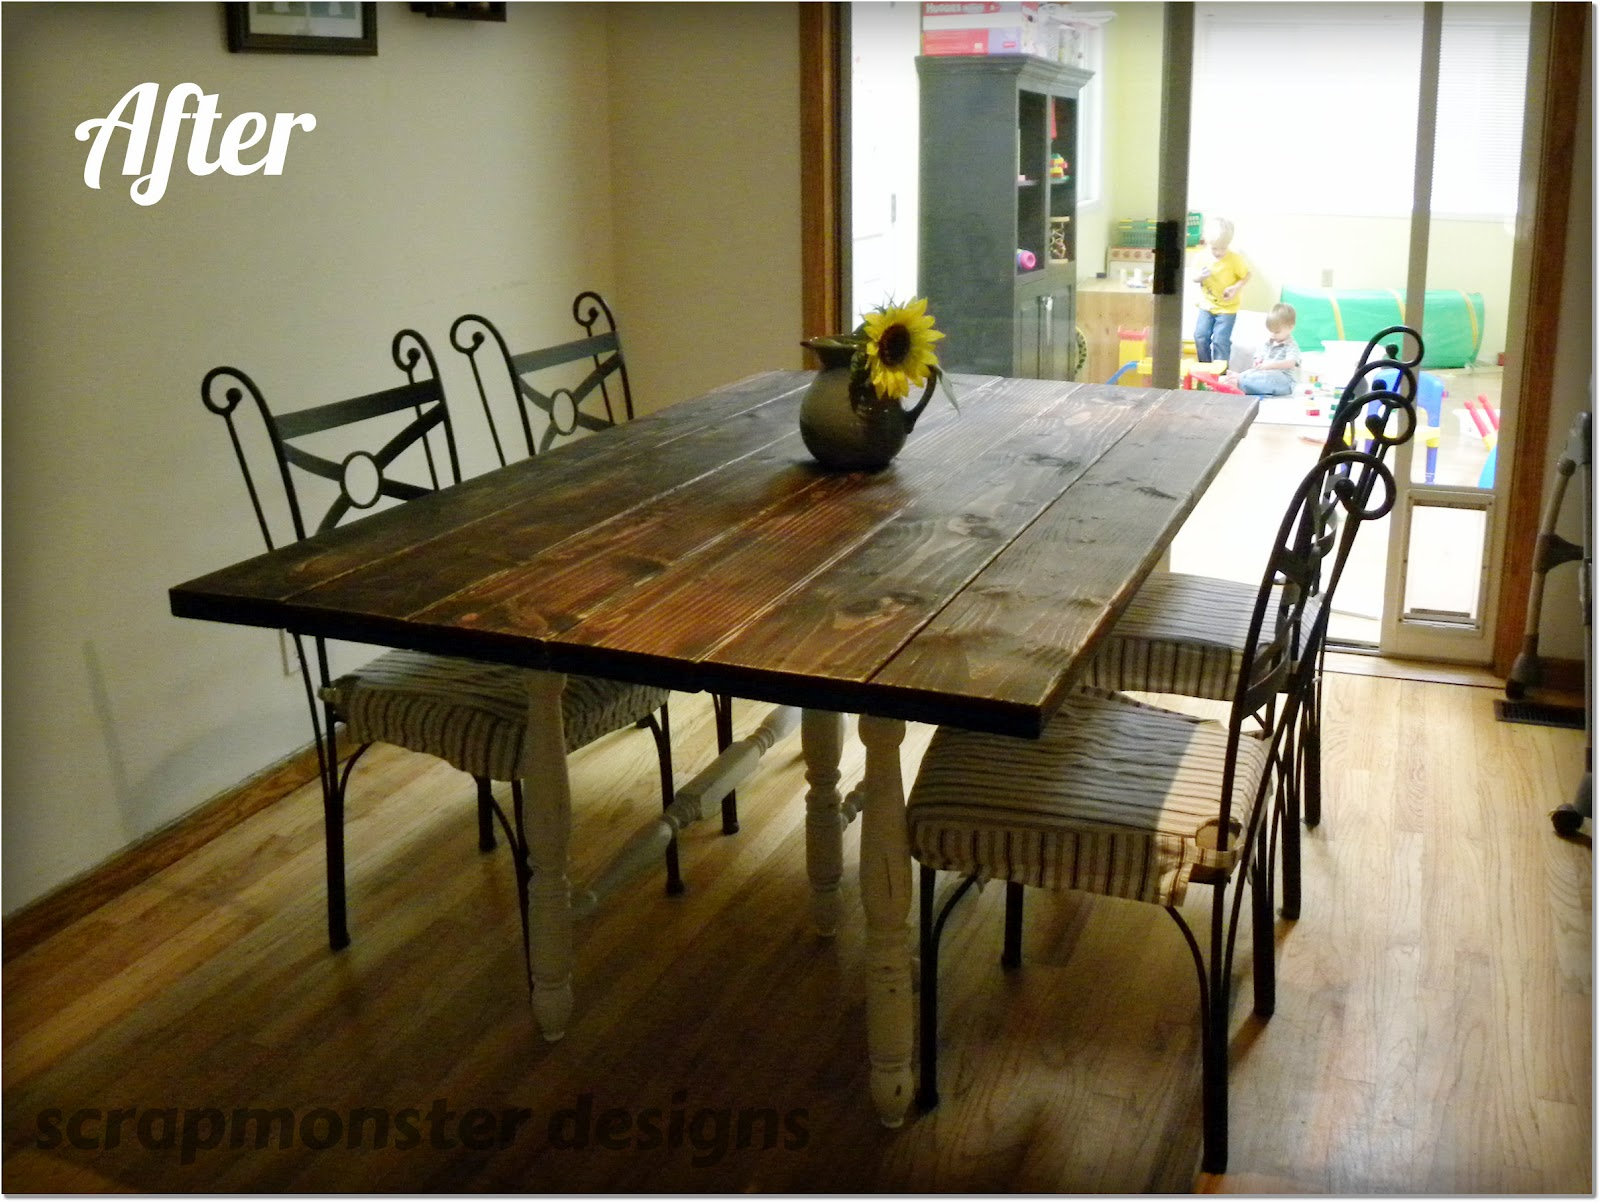 scrapmonster rustic dining table make over